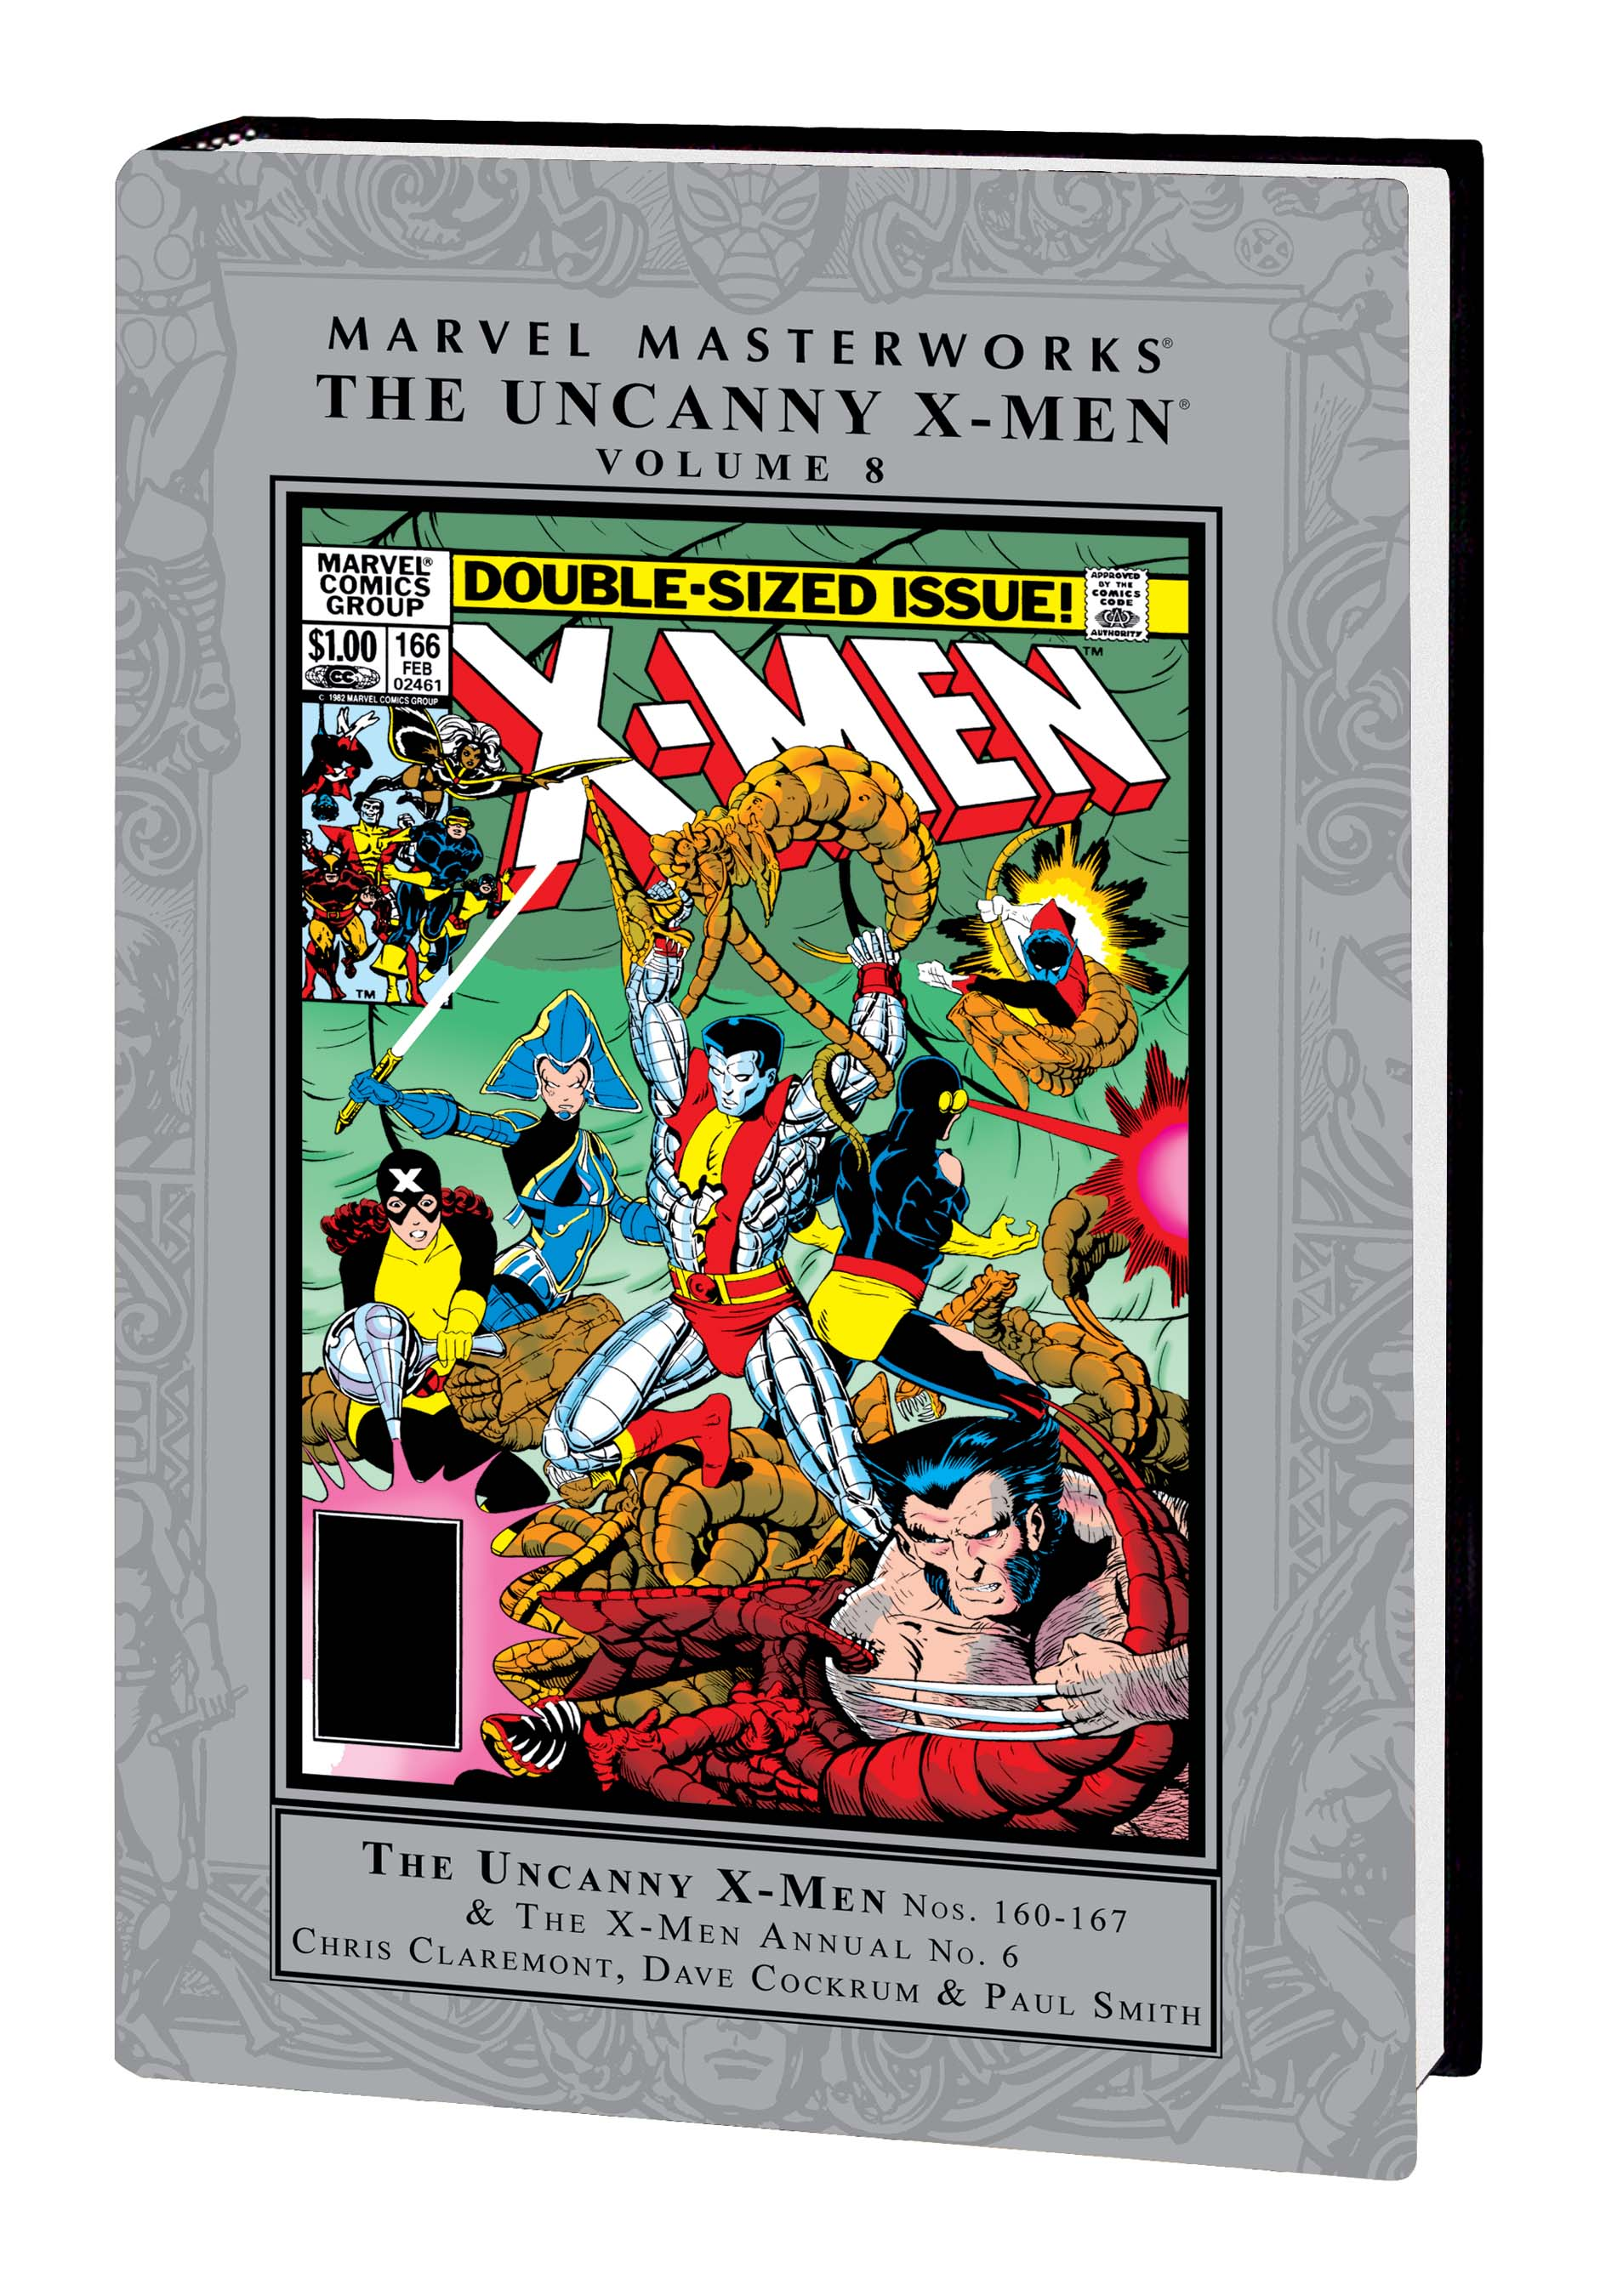 MARVEL MASTERWORKS: THE UNCANNY X-MEN VOL. 8 HC (Hardcover)